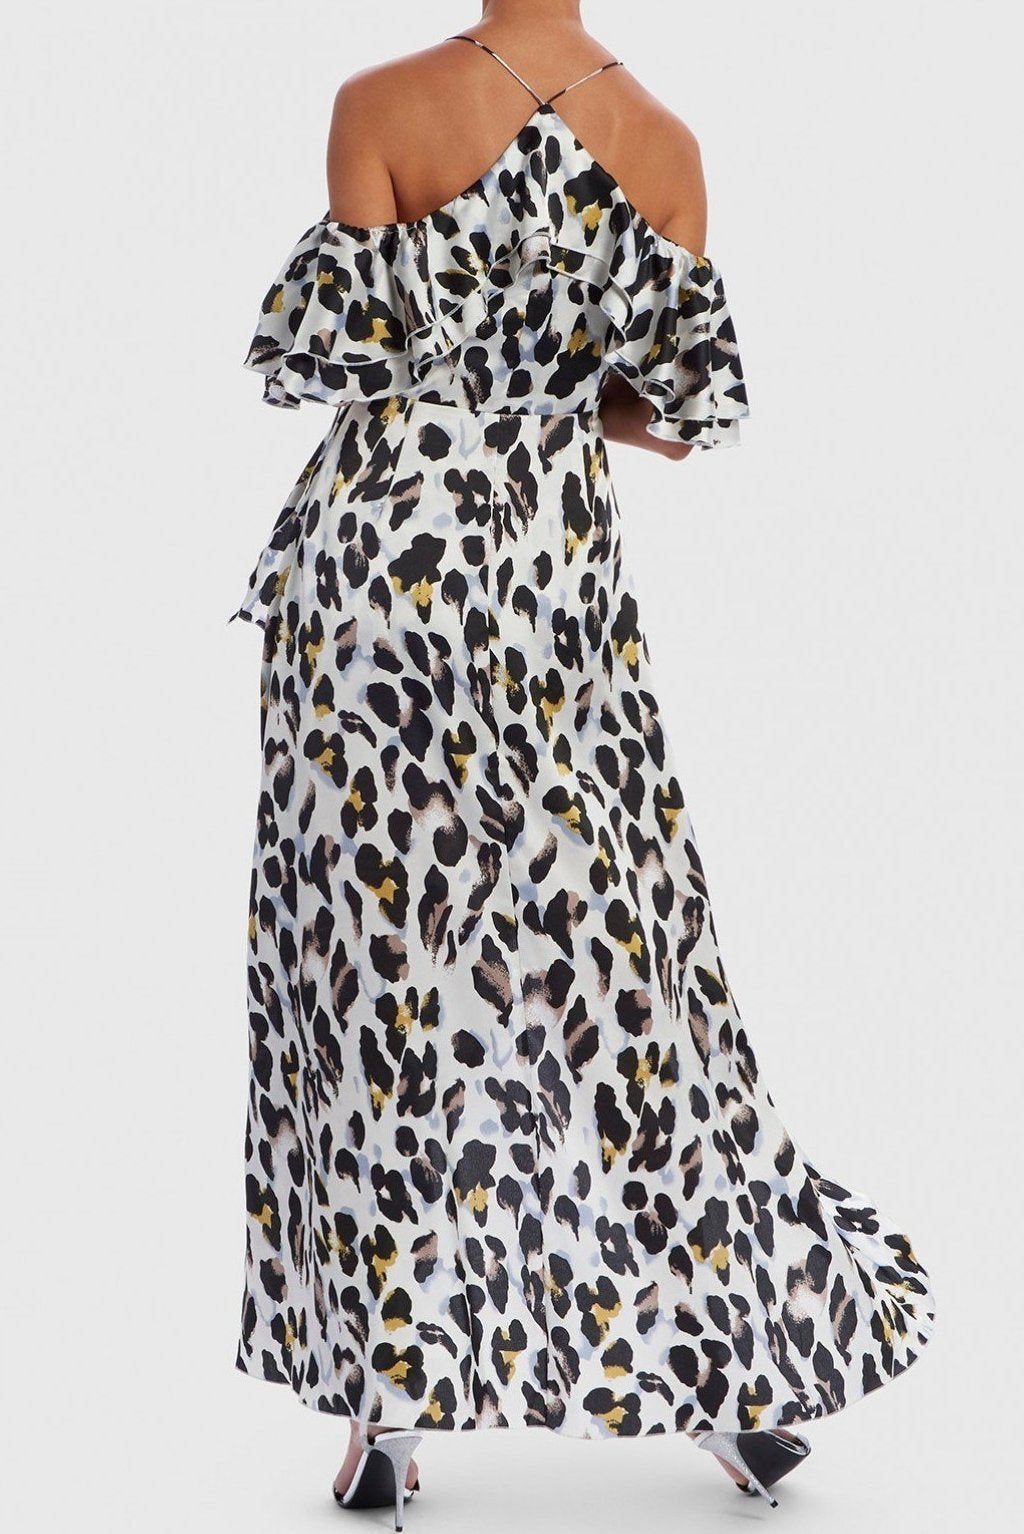 FOREVER UNIQUE U LEOPARD PRINT SATIN MAXI DRESS - WHITE